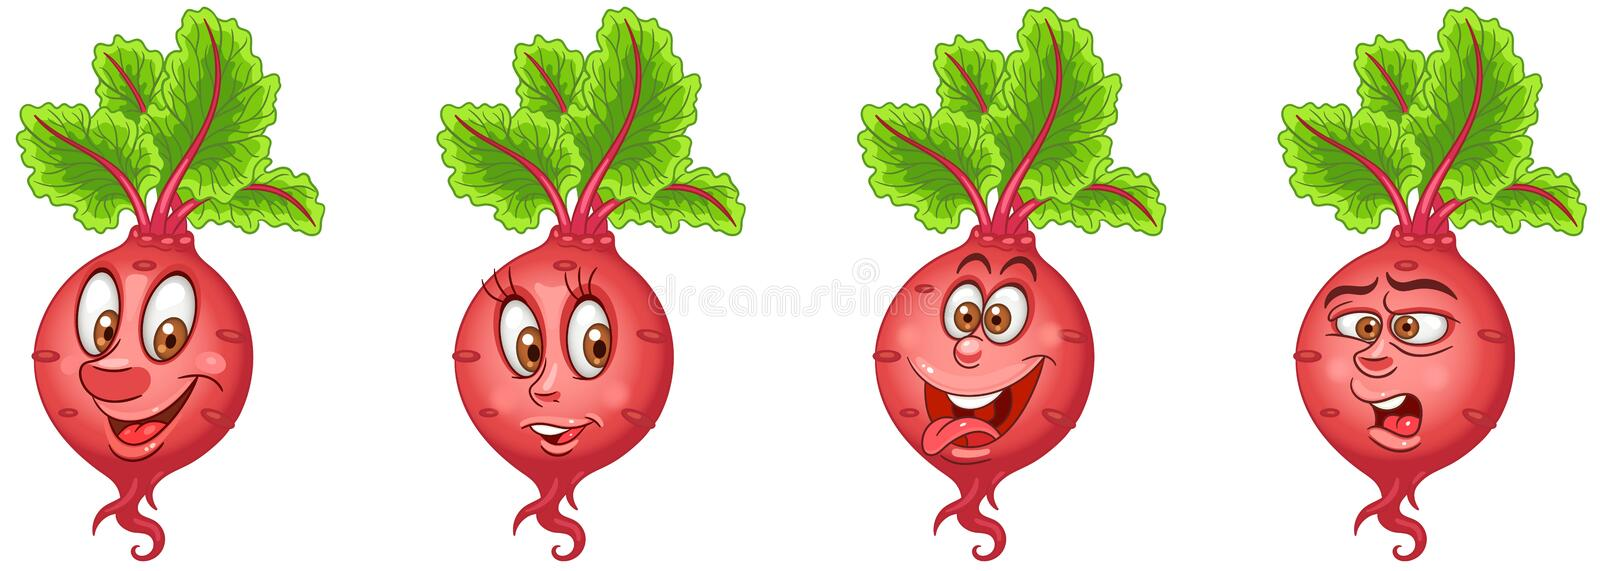 Beet. Beetroot. Food Emoji Emoticon collection royalty free stock photos